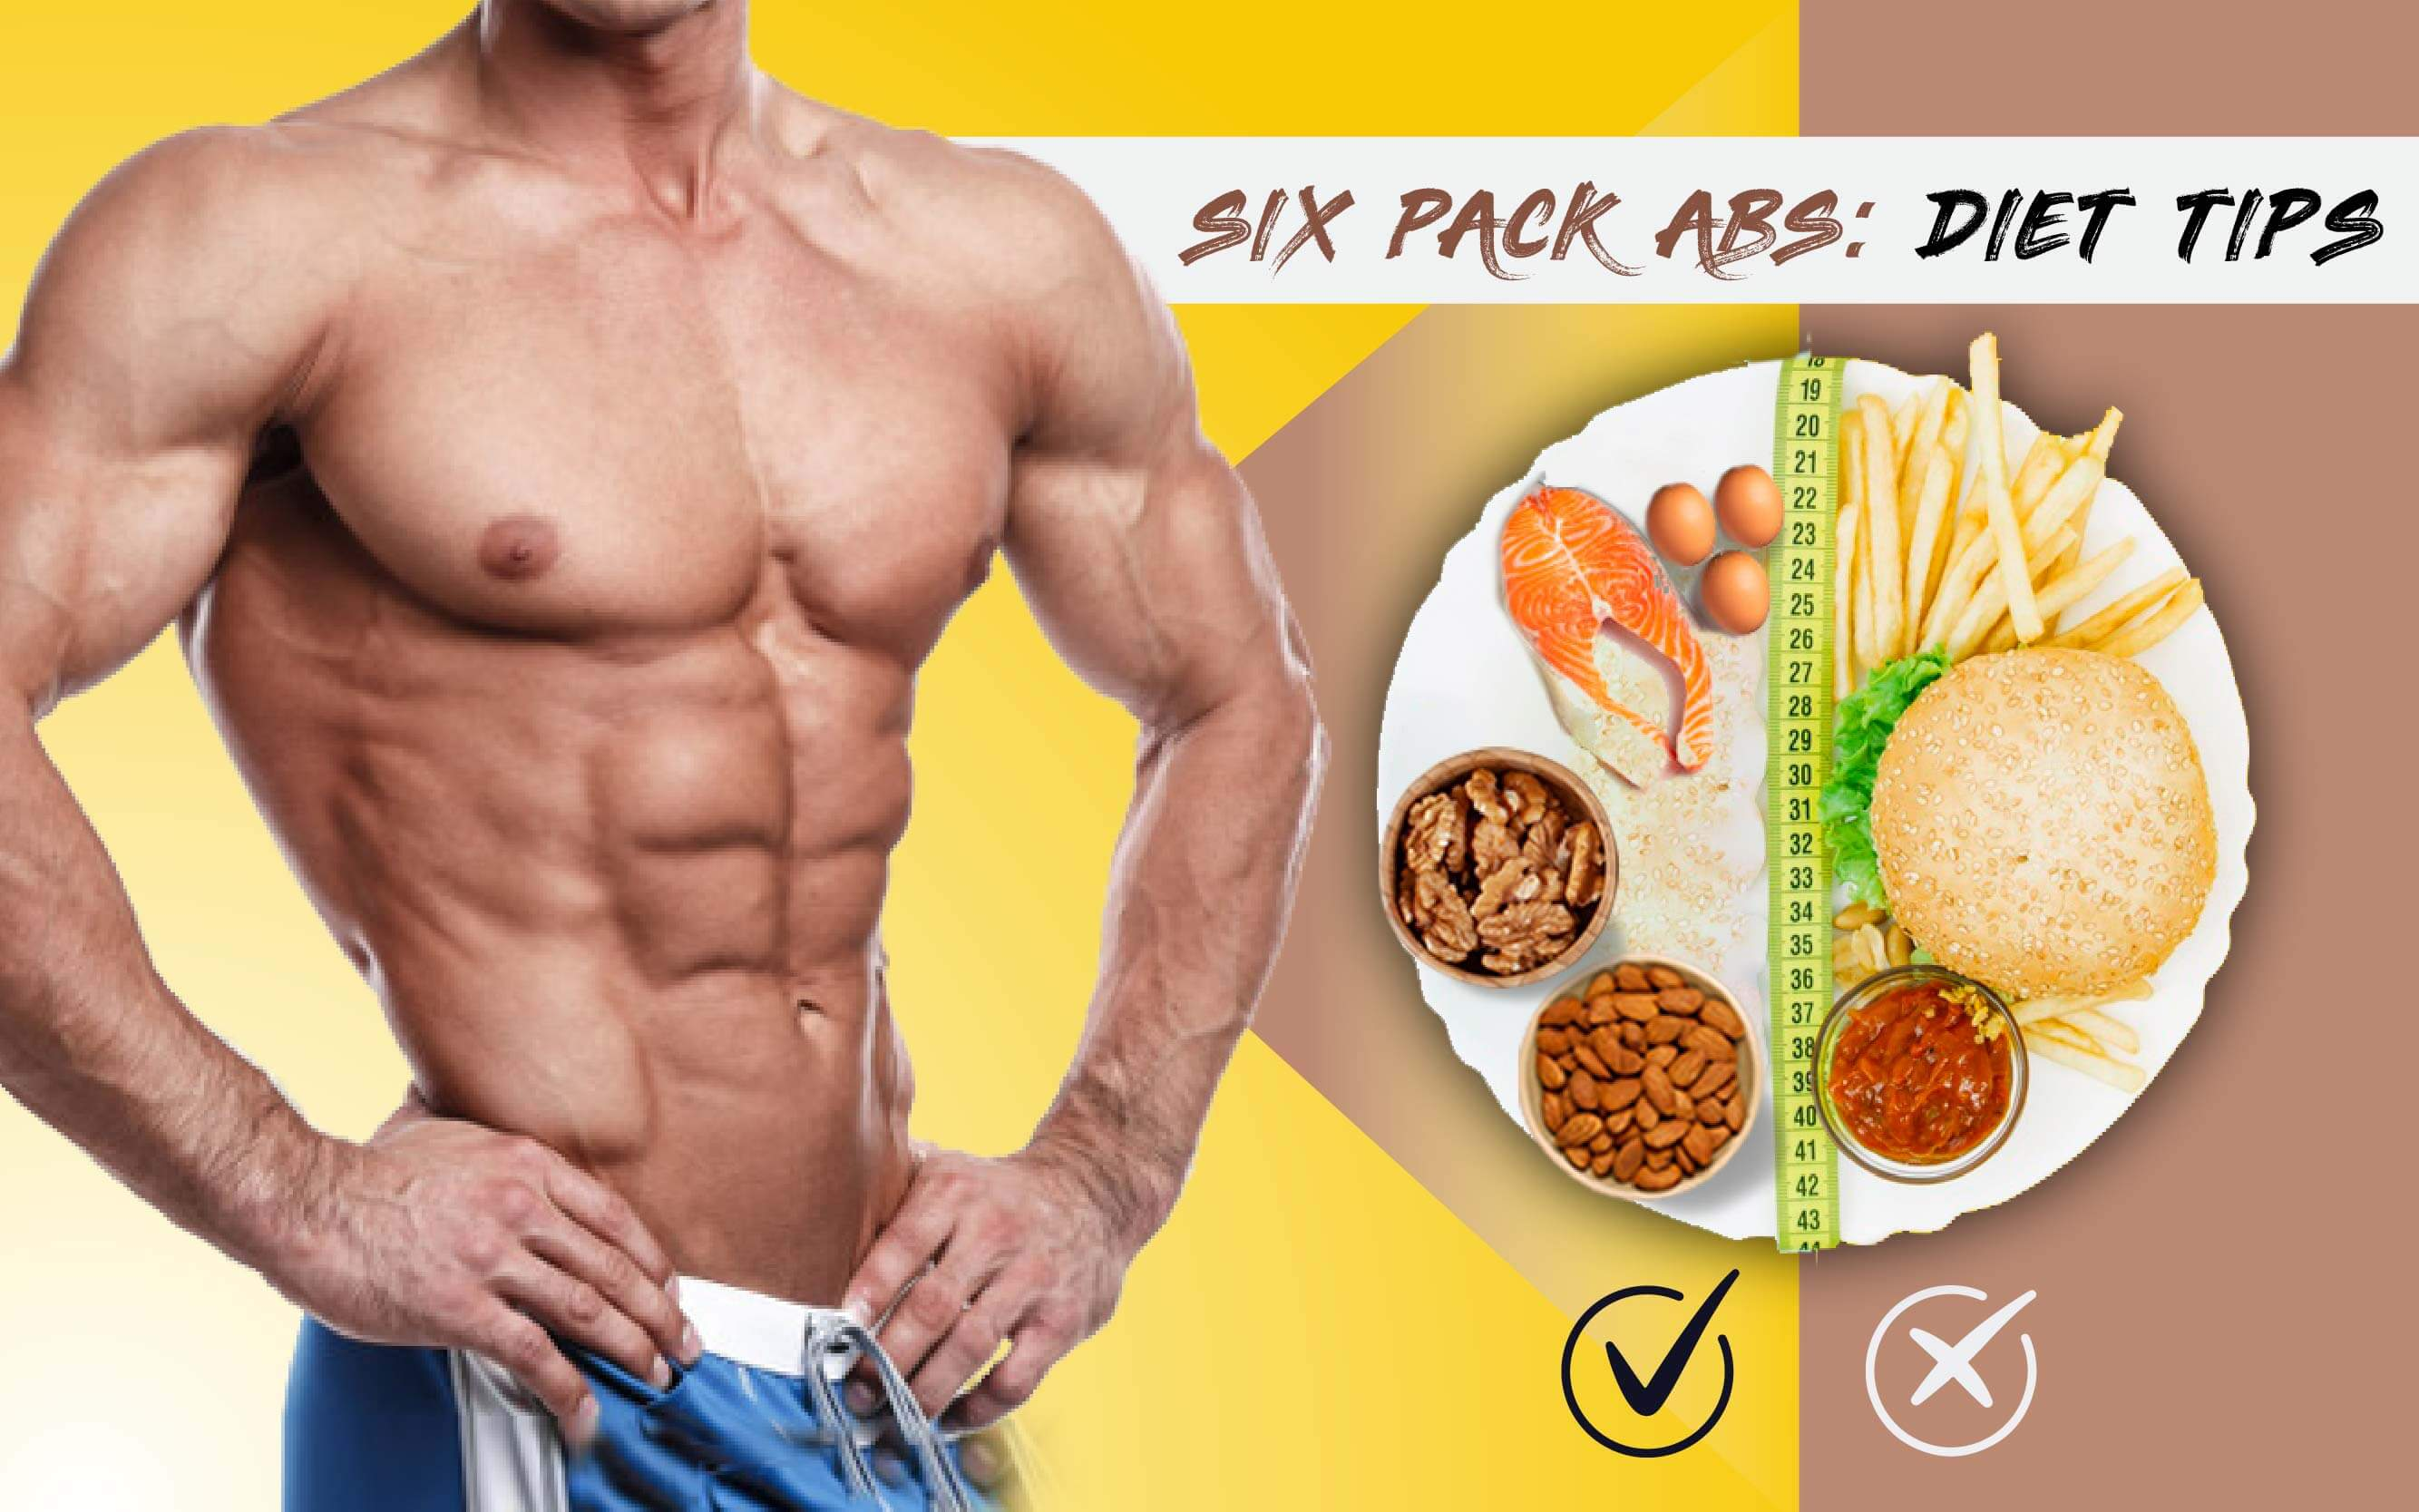 Six Pack Abs Diet Tips